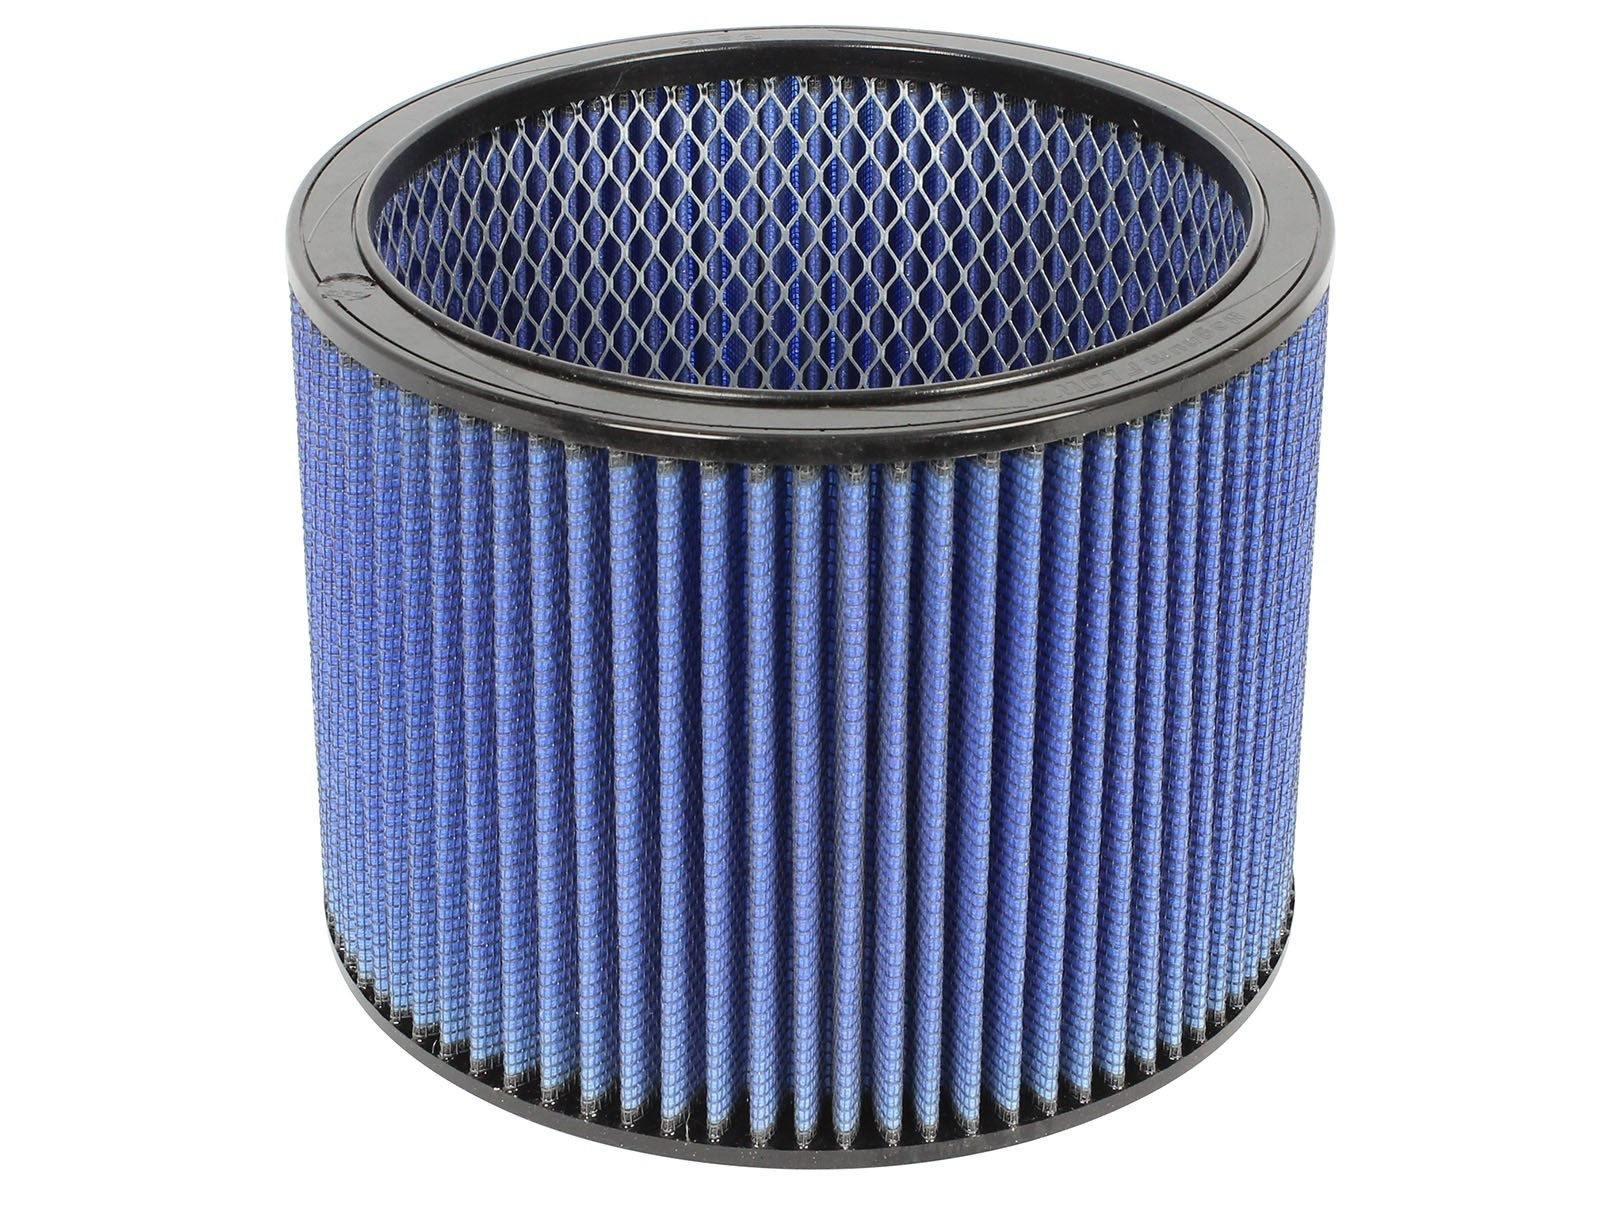 aFe POWER 18-10905 Magnum FLOW Pro 5R Air Filter